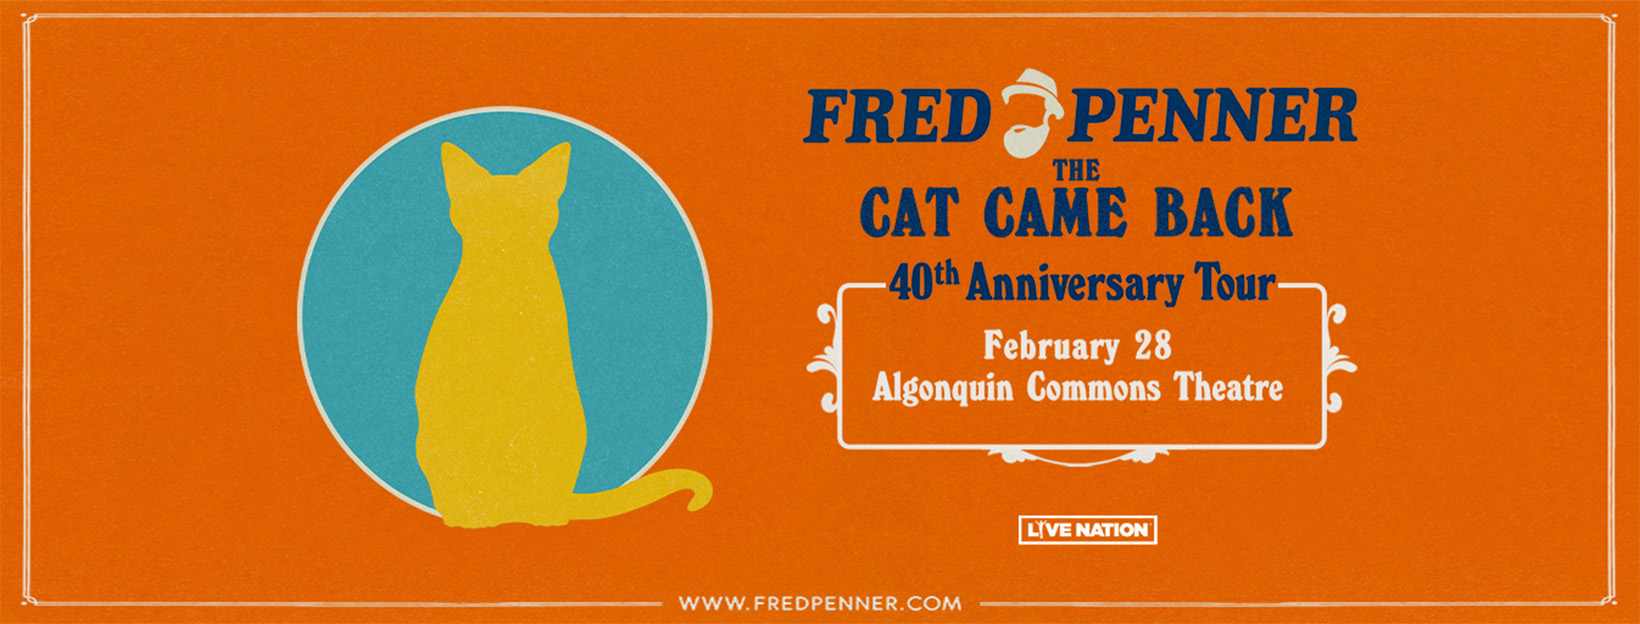 Fred Penner: The Cat Came Back 40th Anniversary Tour